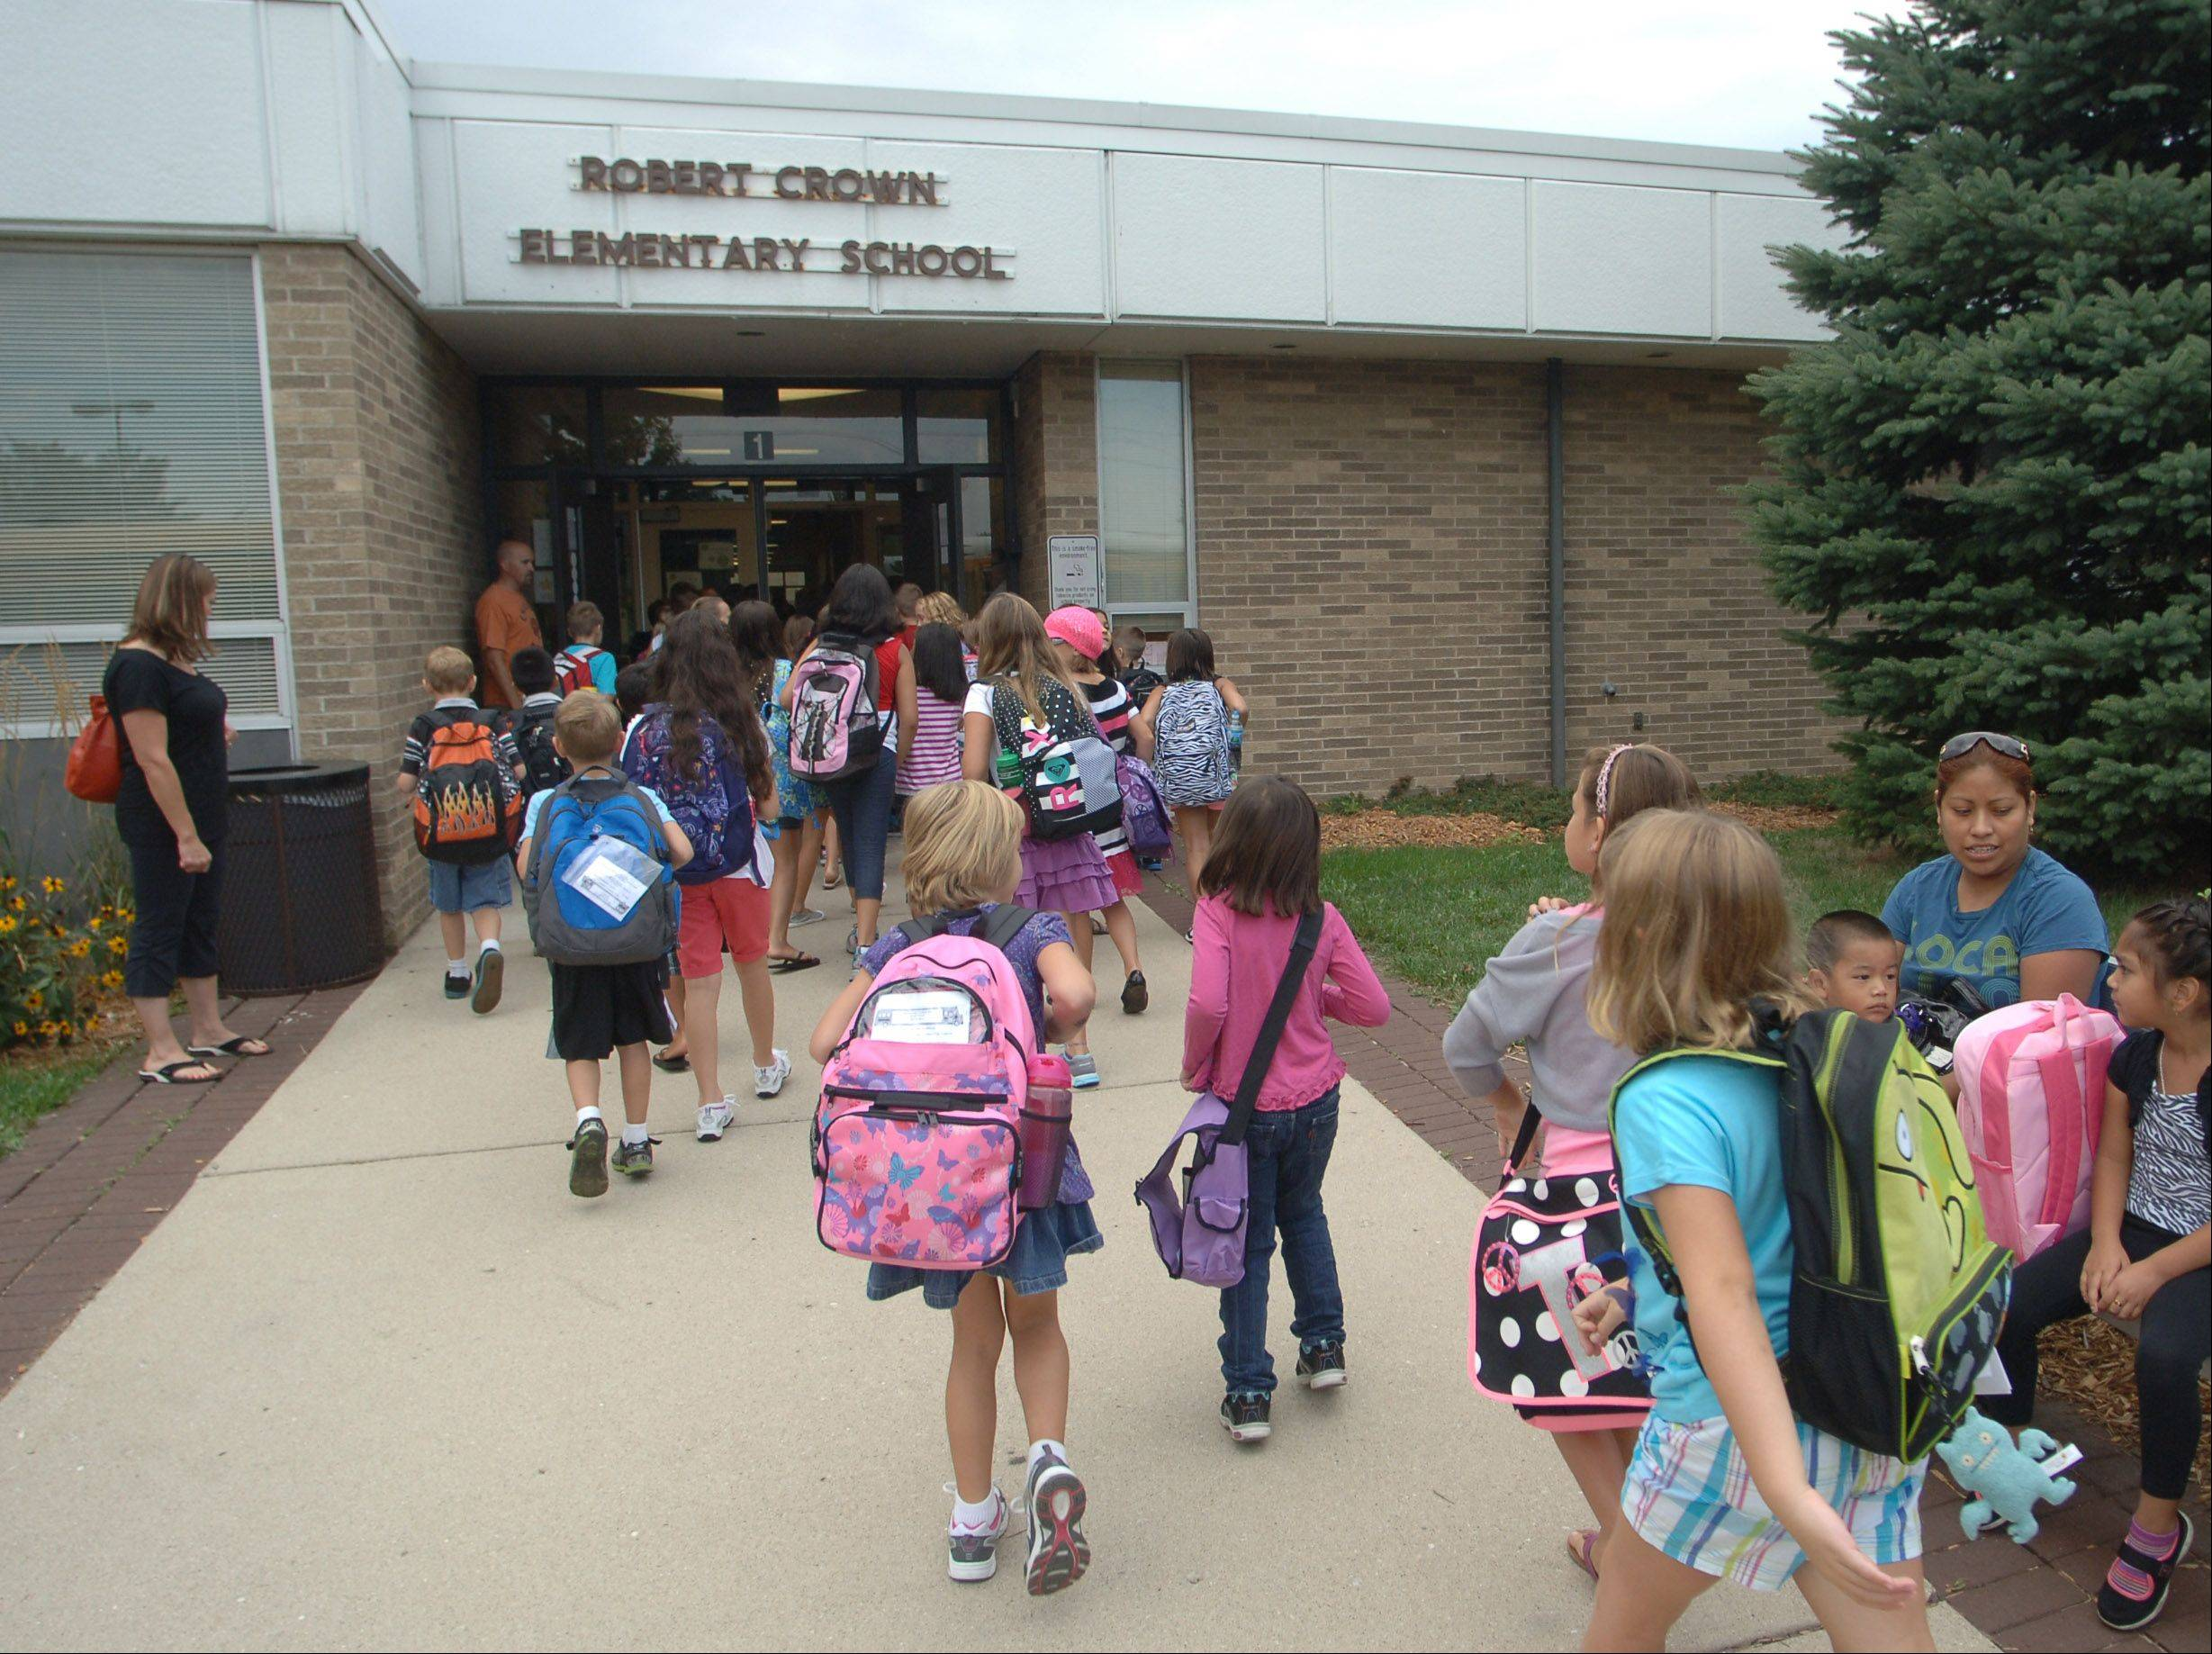 Students head into Robert Crown School for first day of classes Wednesday in Wauconda.